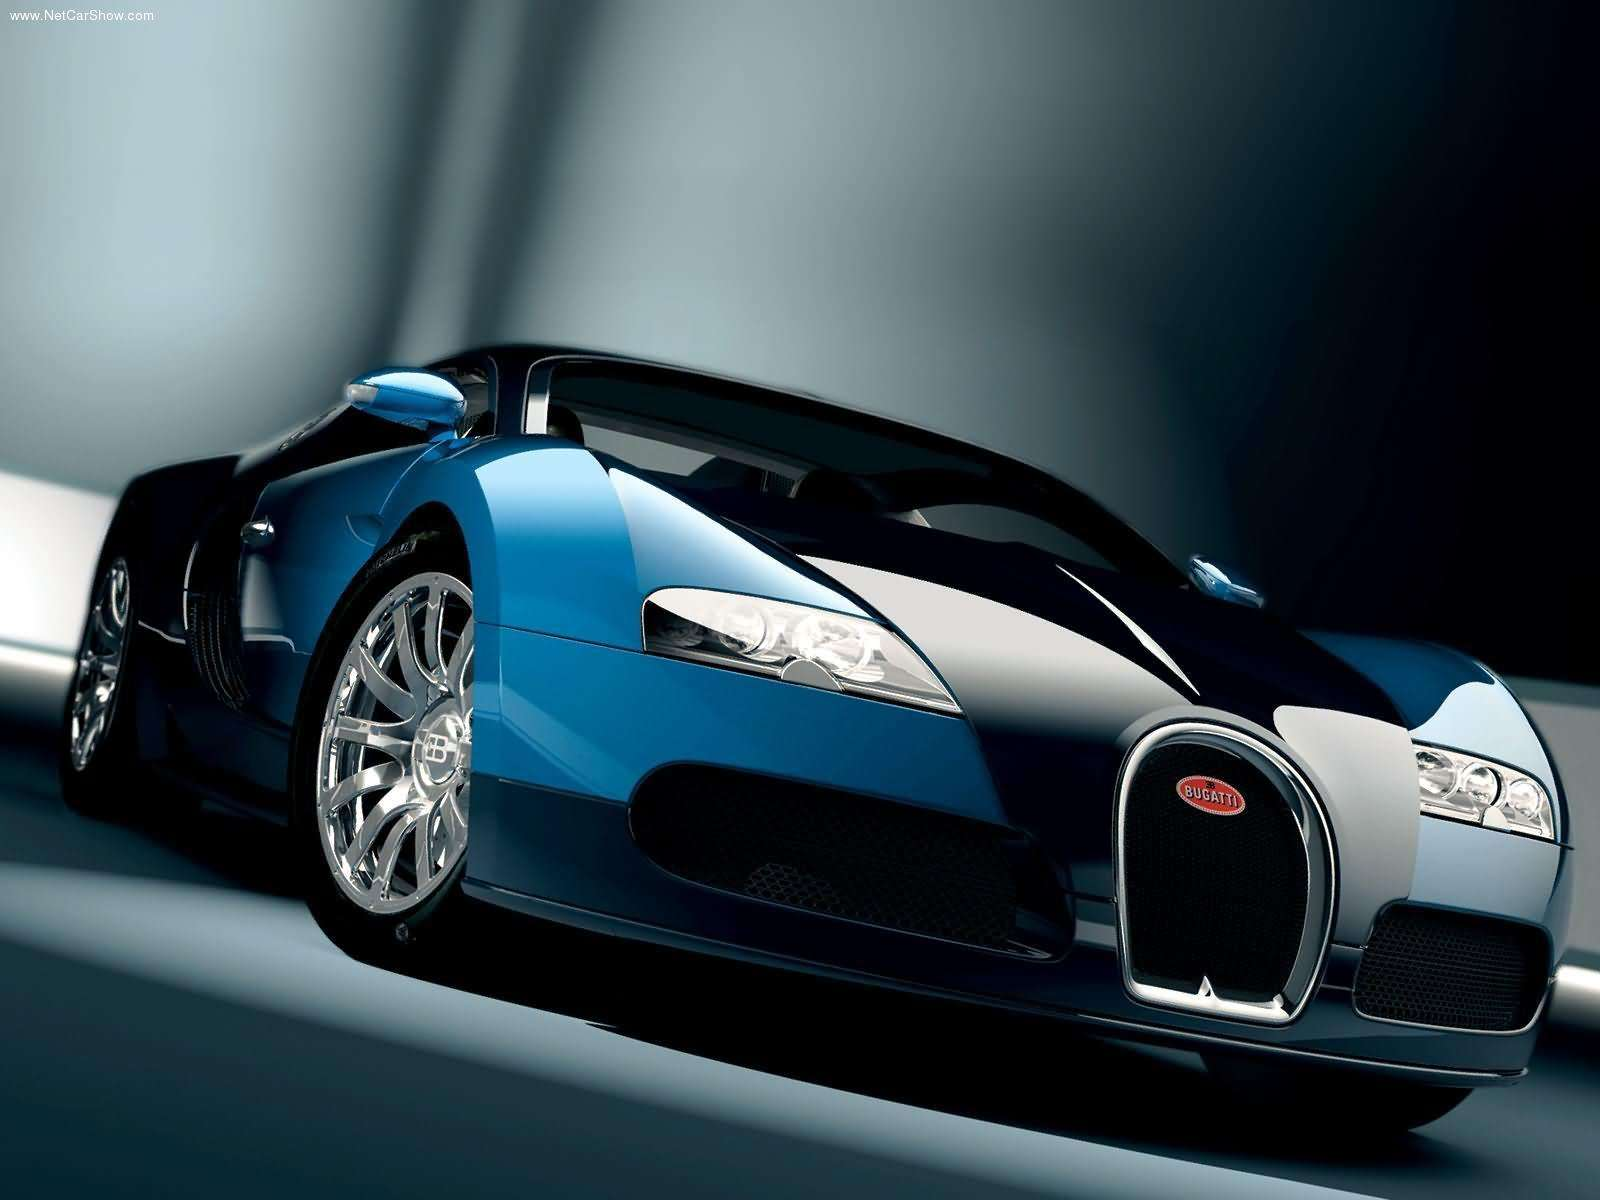 Bugatti Veyron Car Wallpapers Hd All Hd Wallpapers